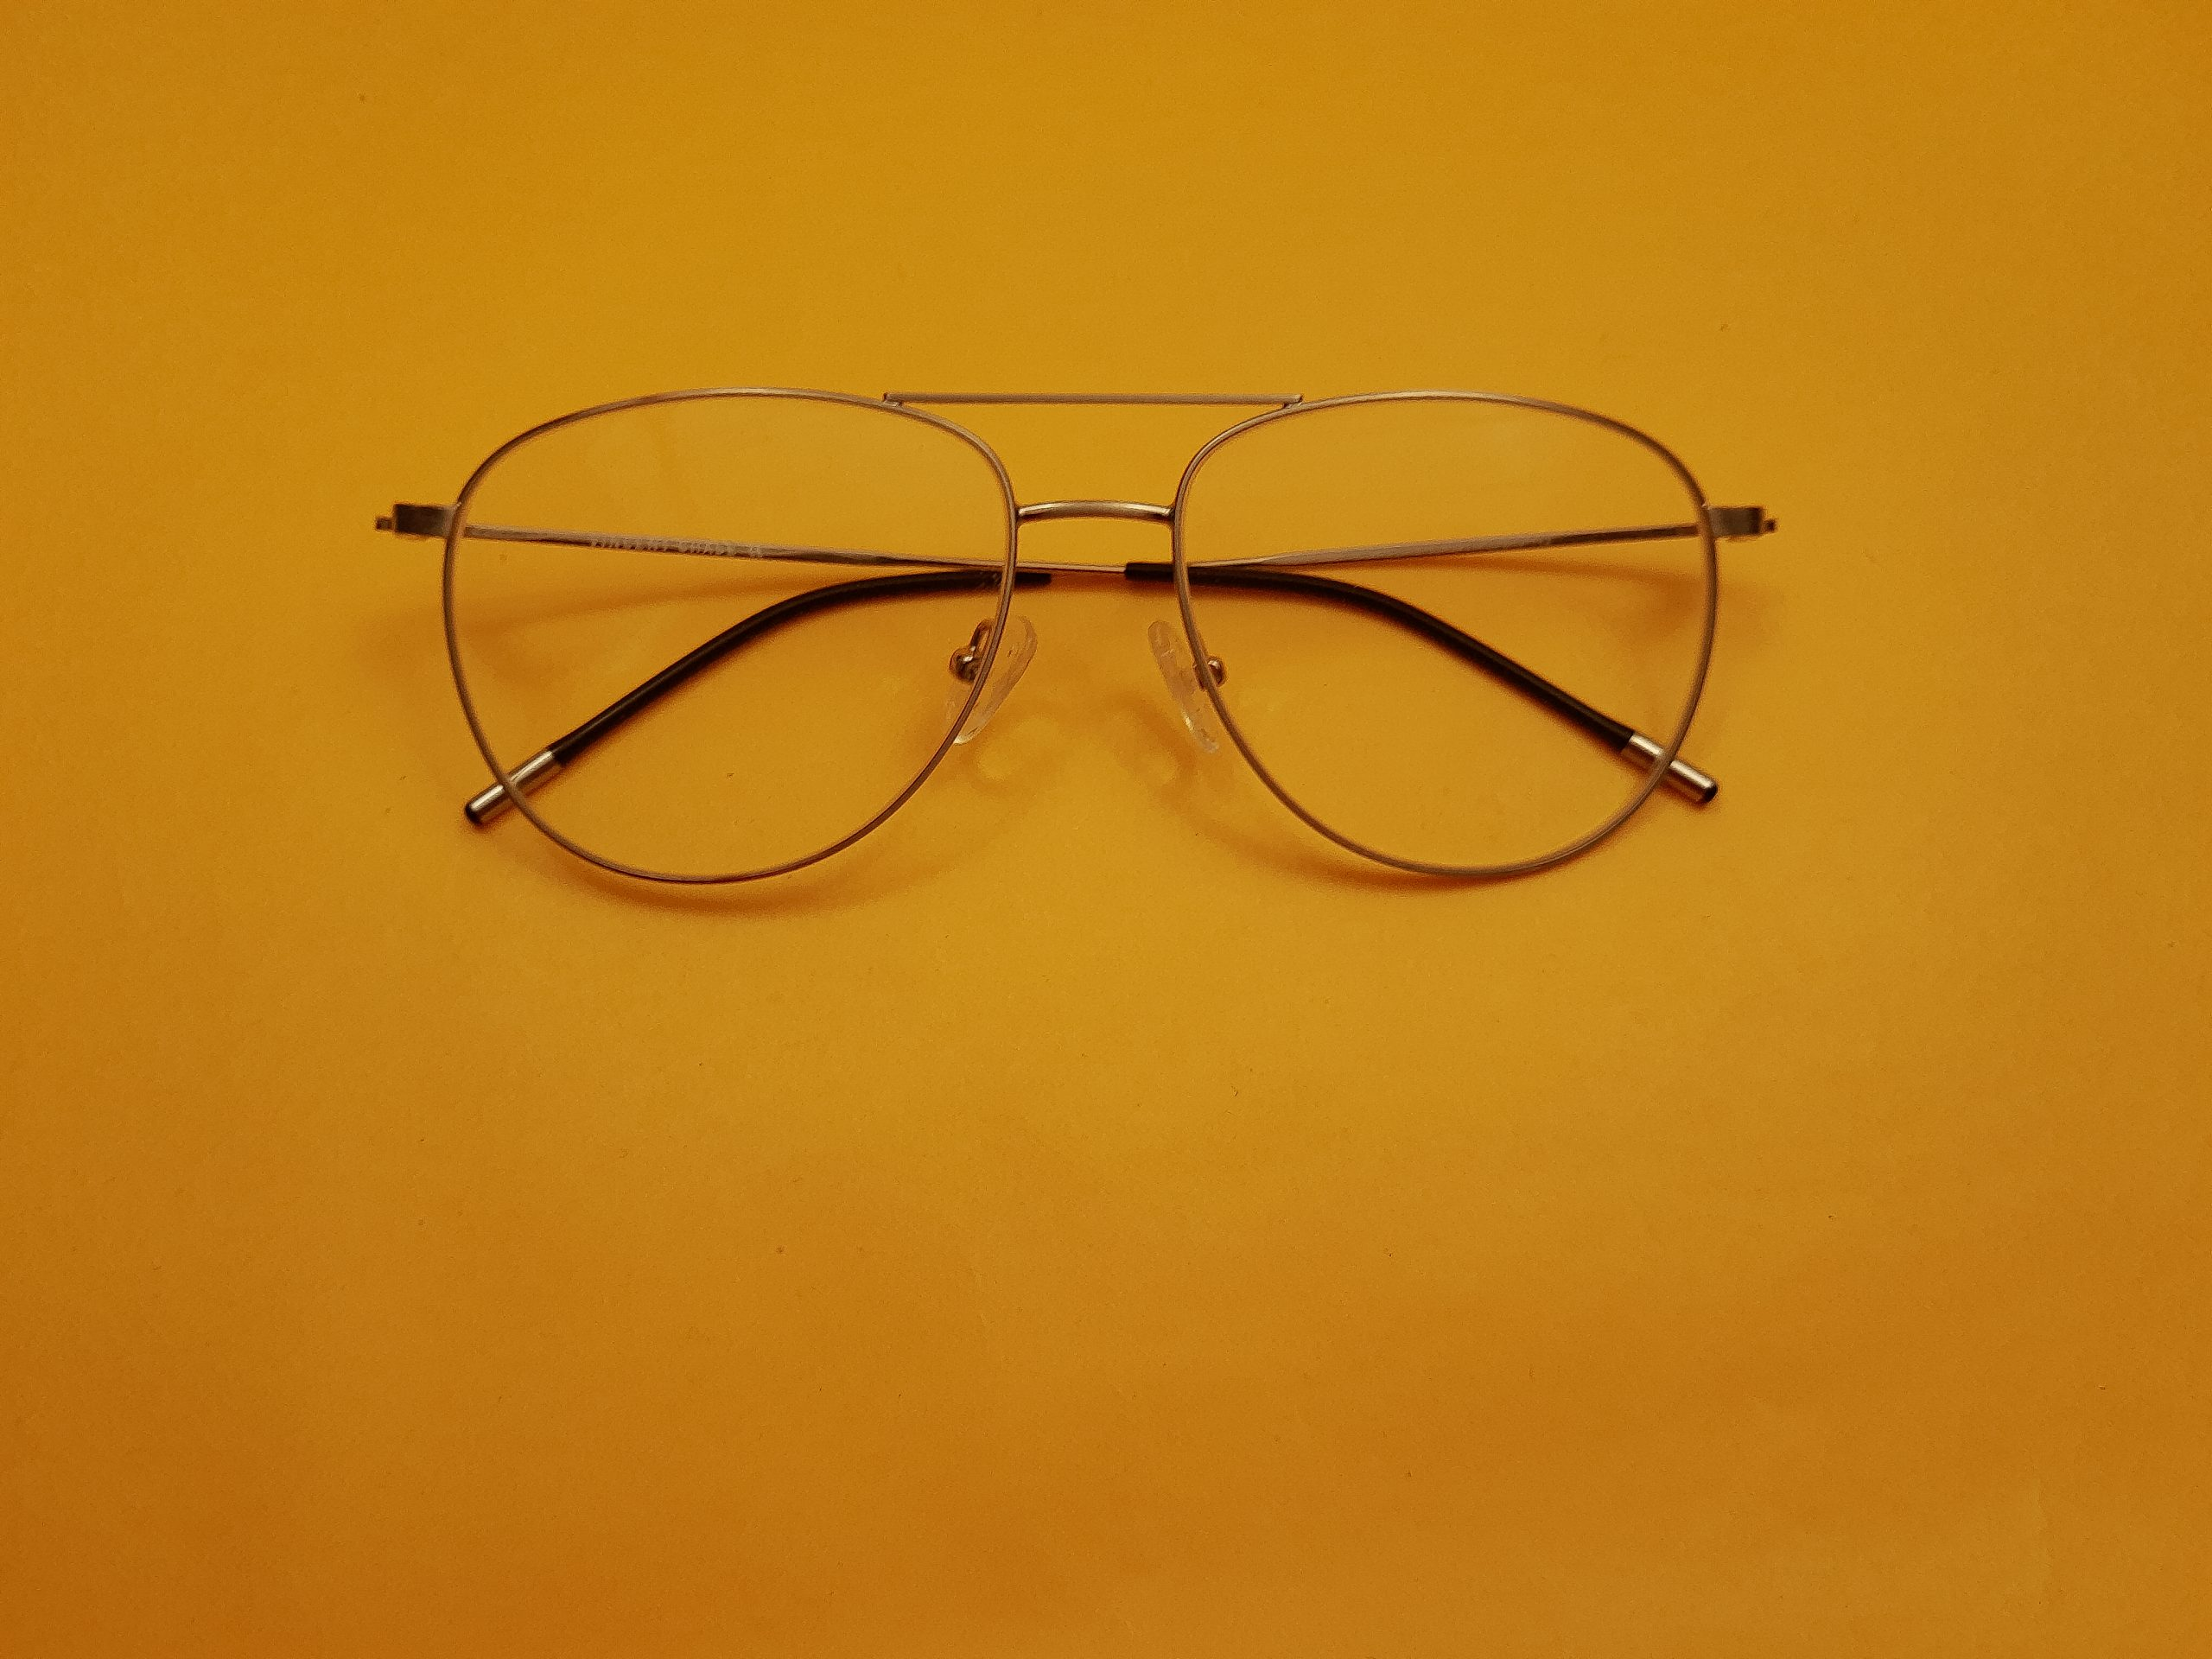 Closer look of a spectacles